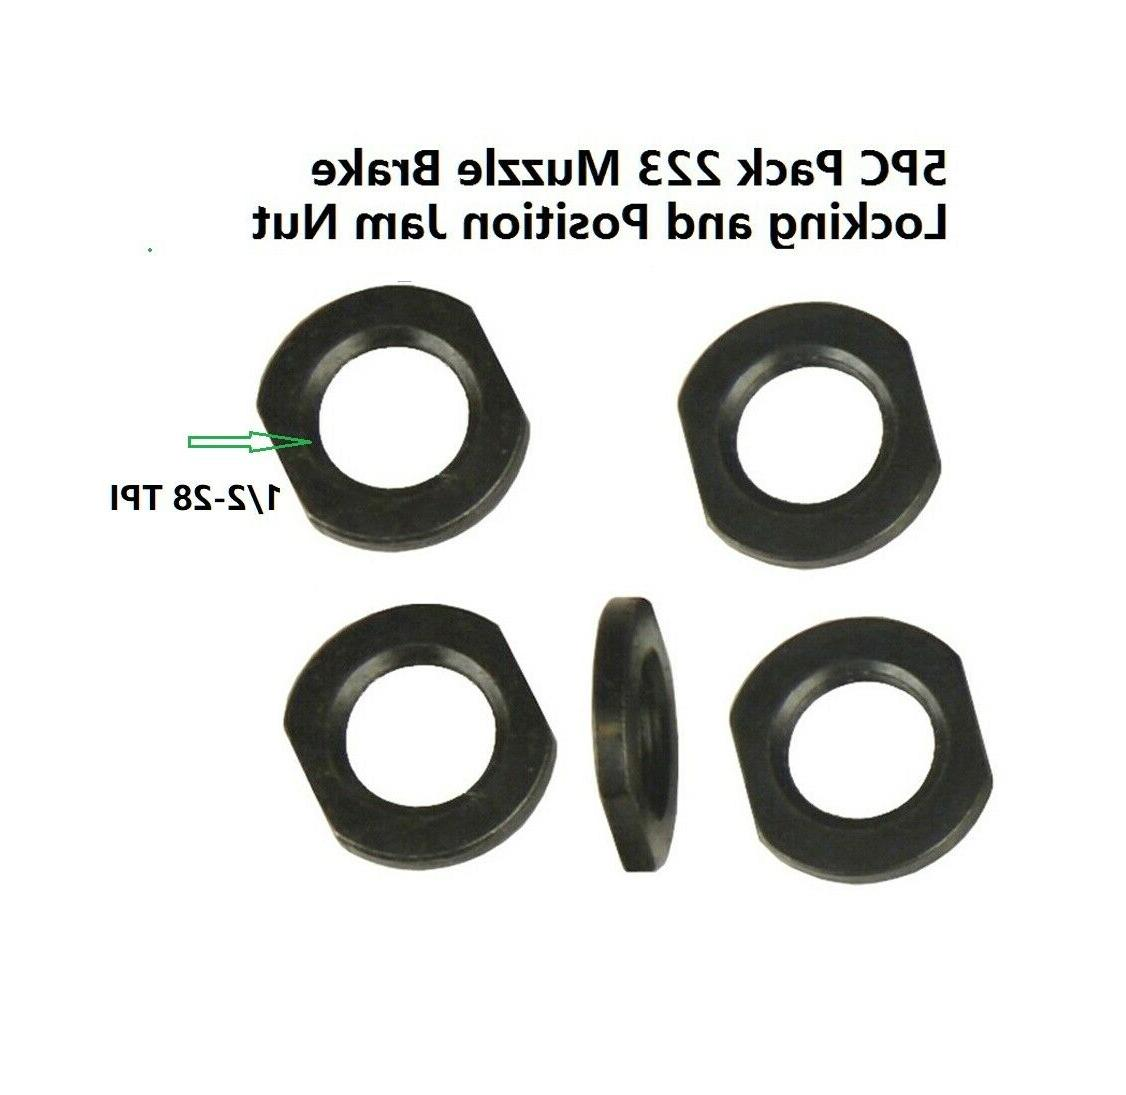 5pc all steel 1 2 28 tpi